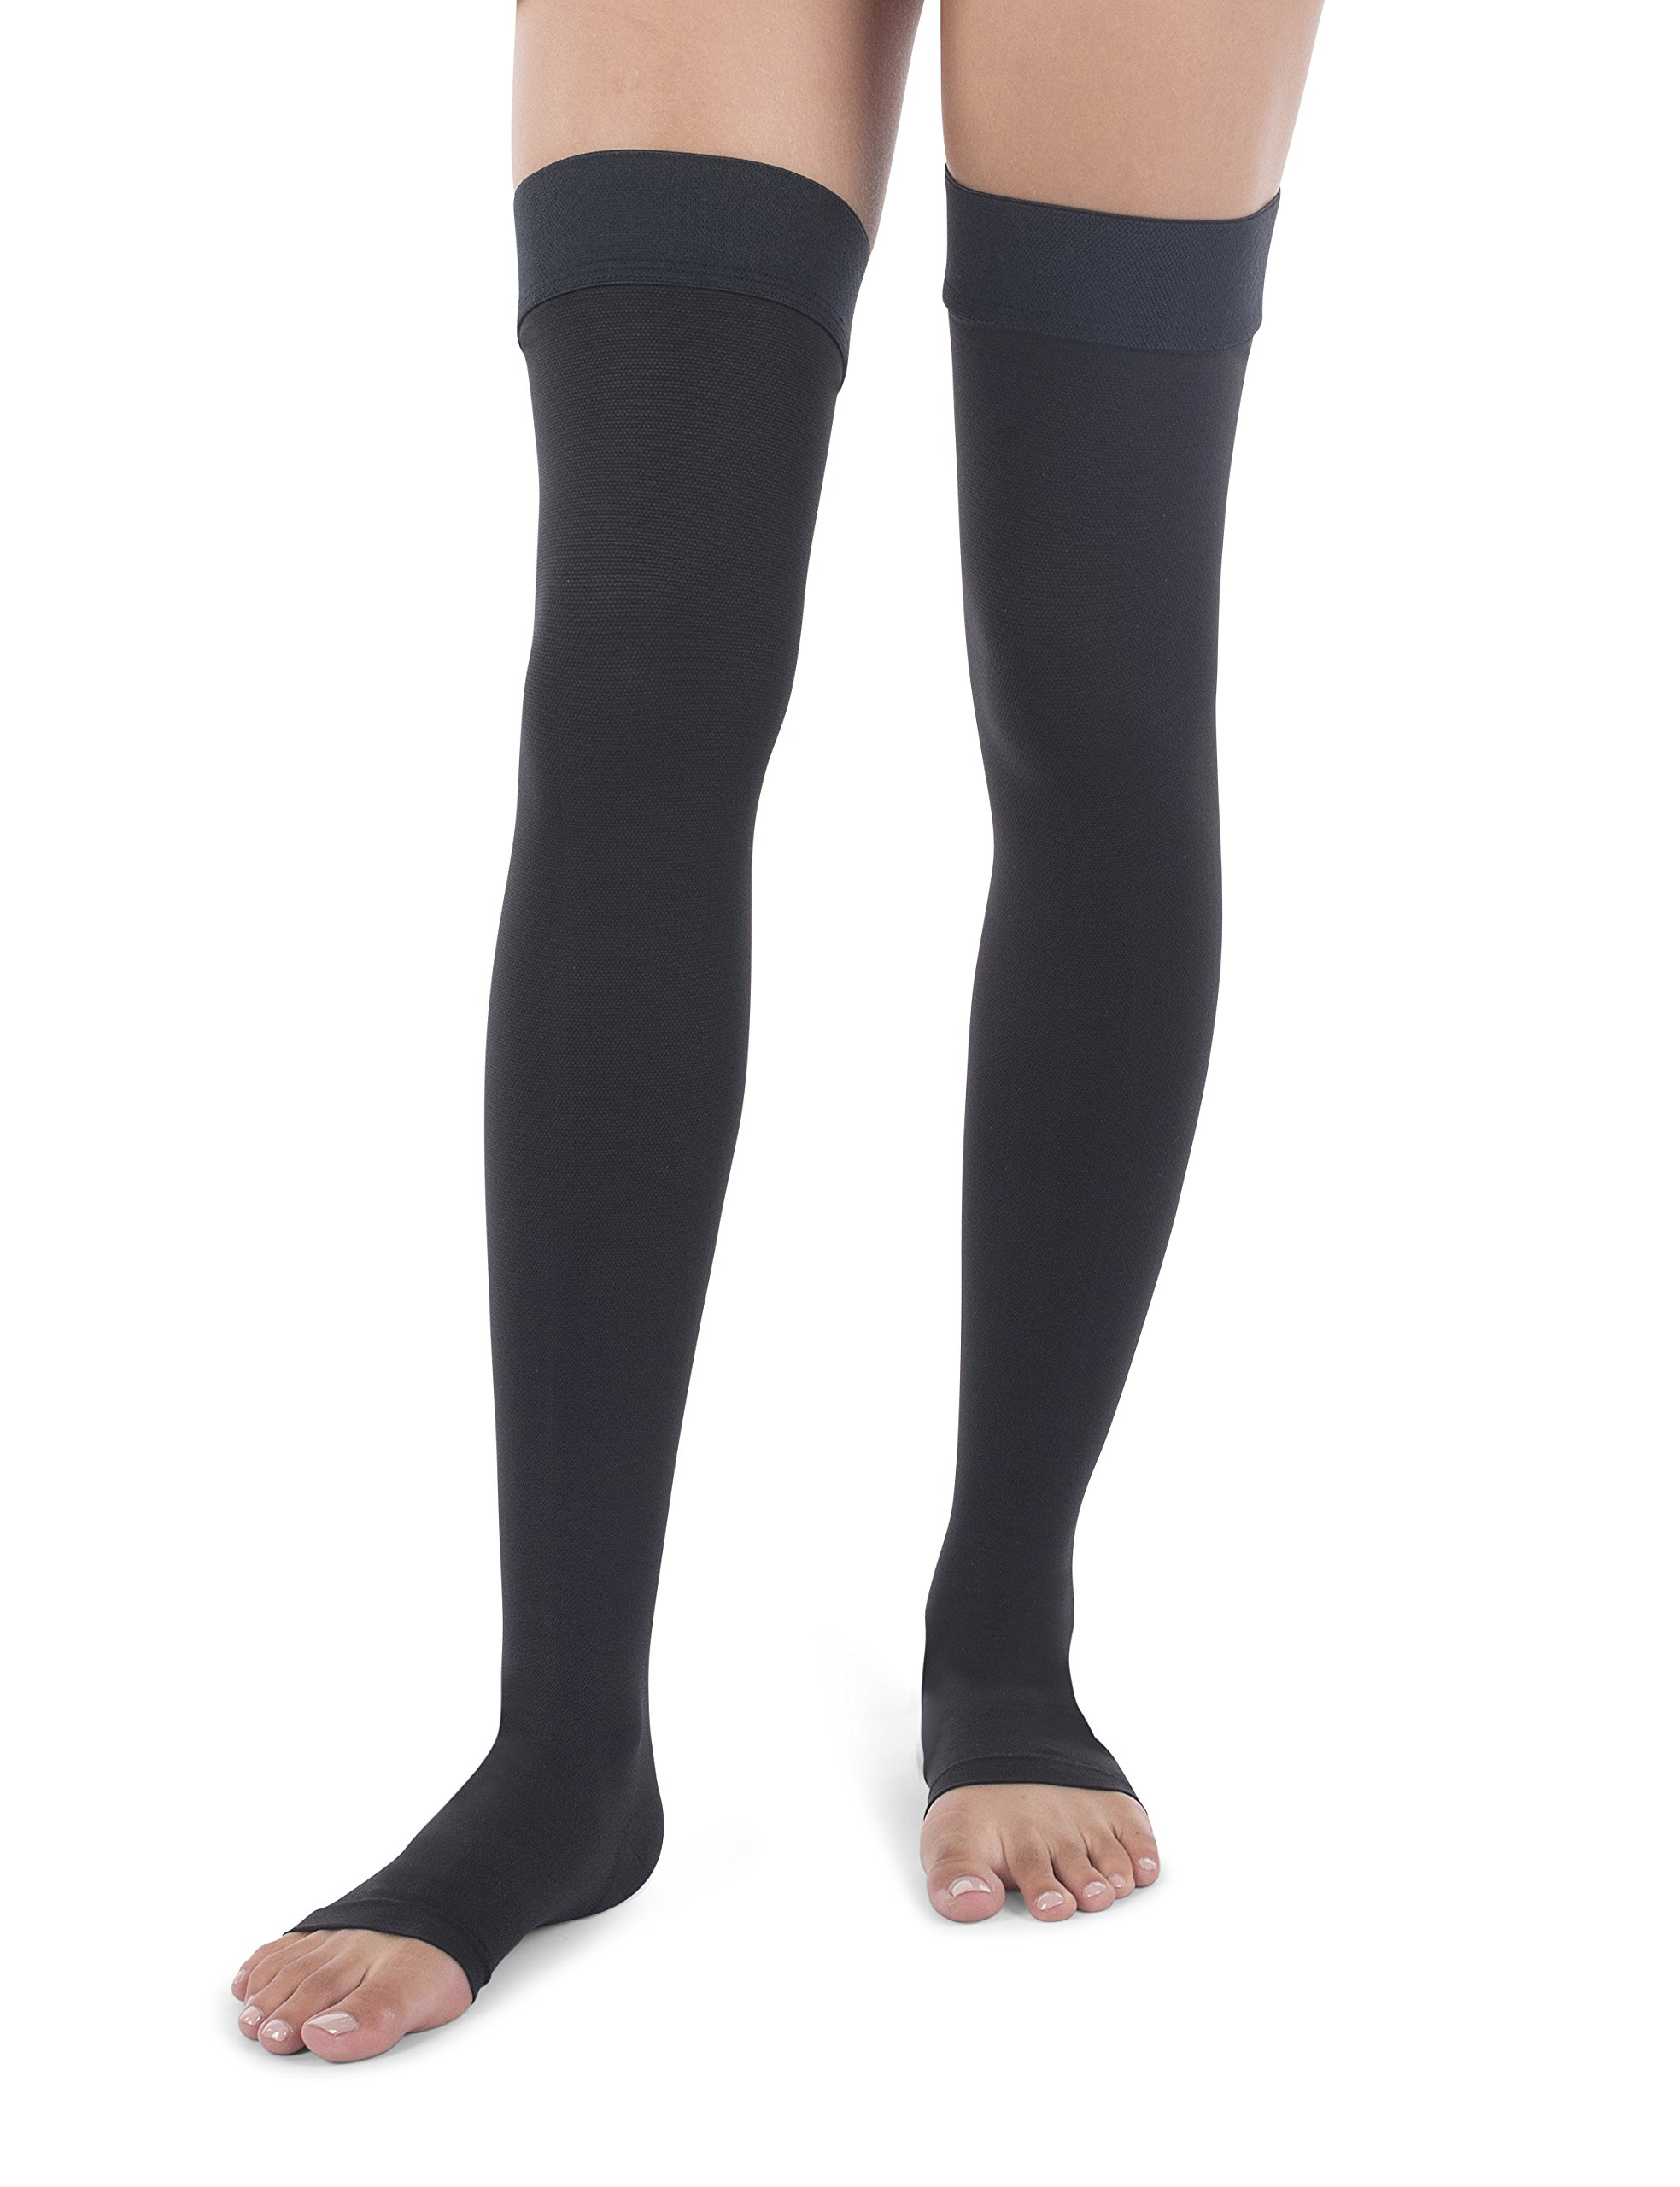 Jomi Compression Thigh High Collection, 20-30mmHg Surgical Weight Open Toe 241 (XX-Large, Black) by JOMI COMPRESSION (Image #6)